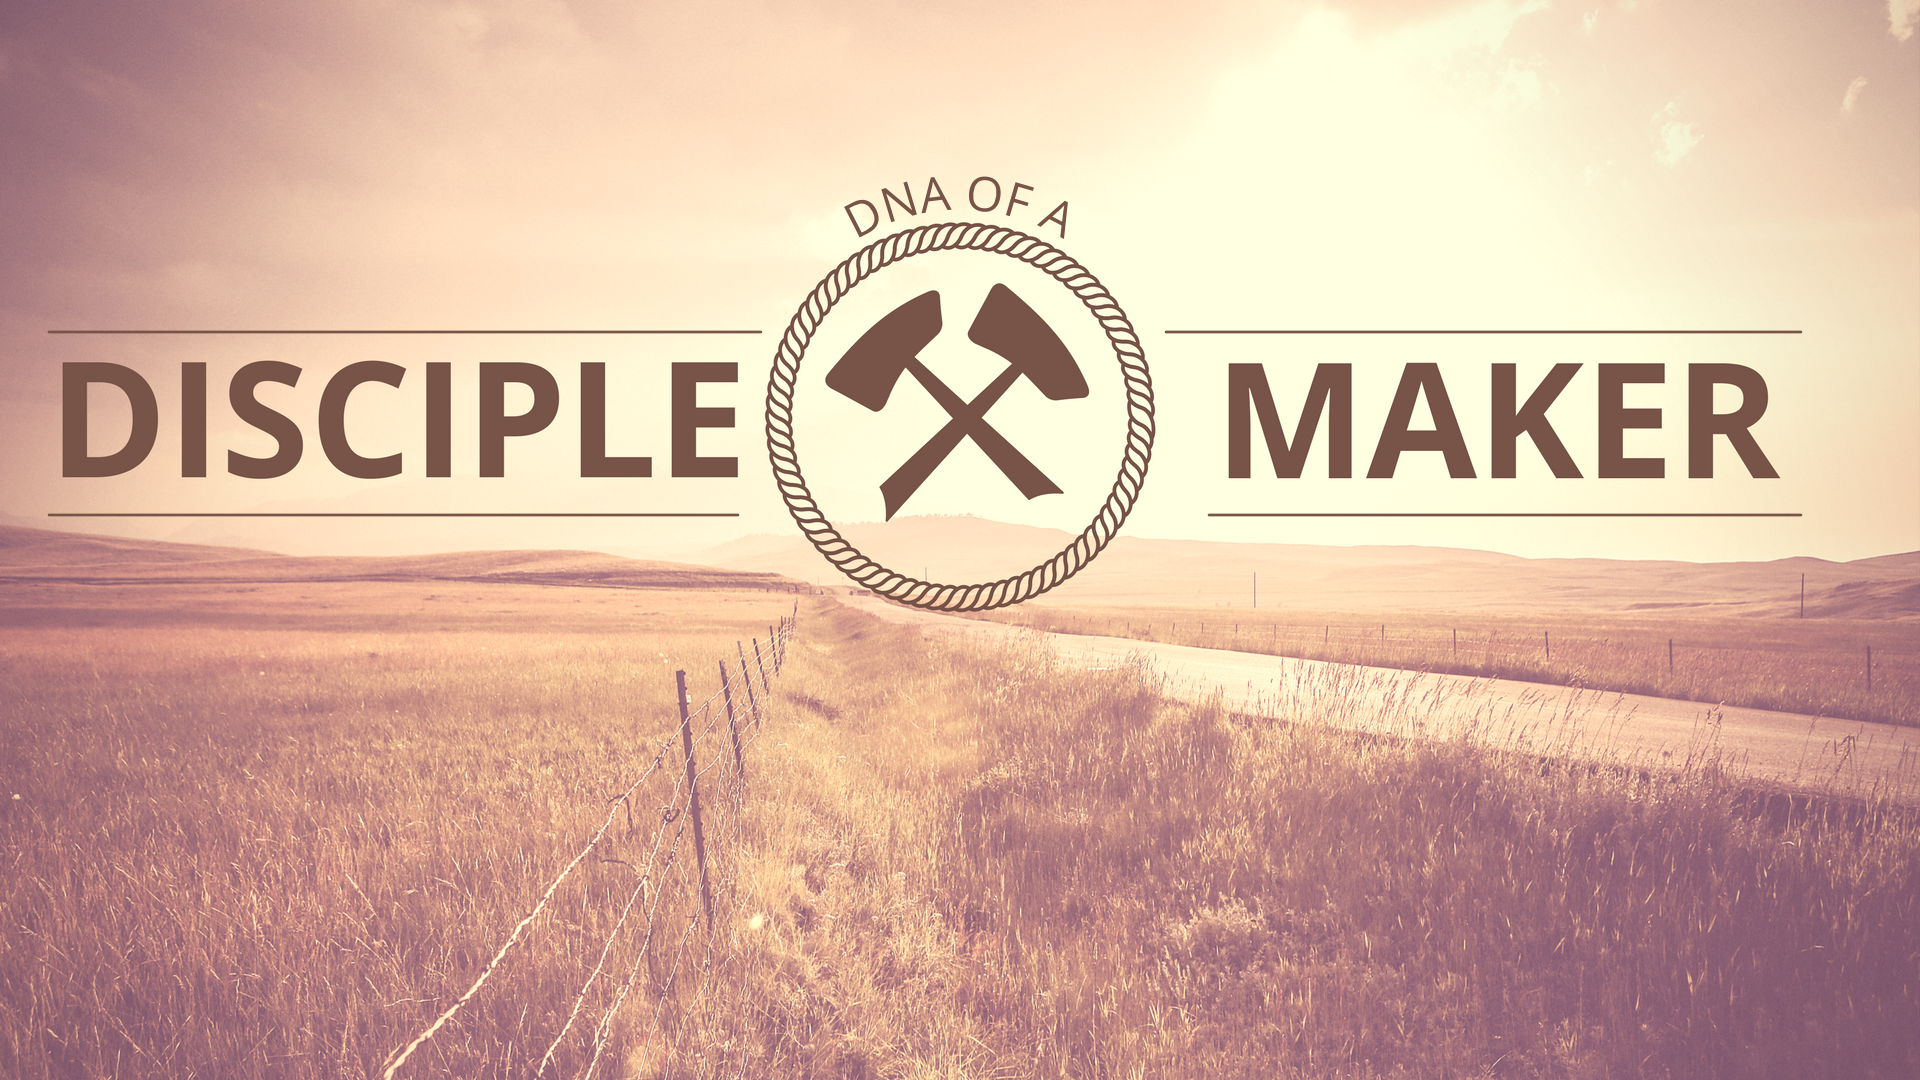 DNA of a Disciple Maker.png